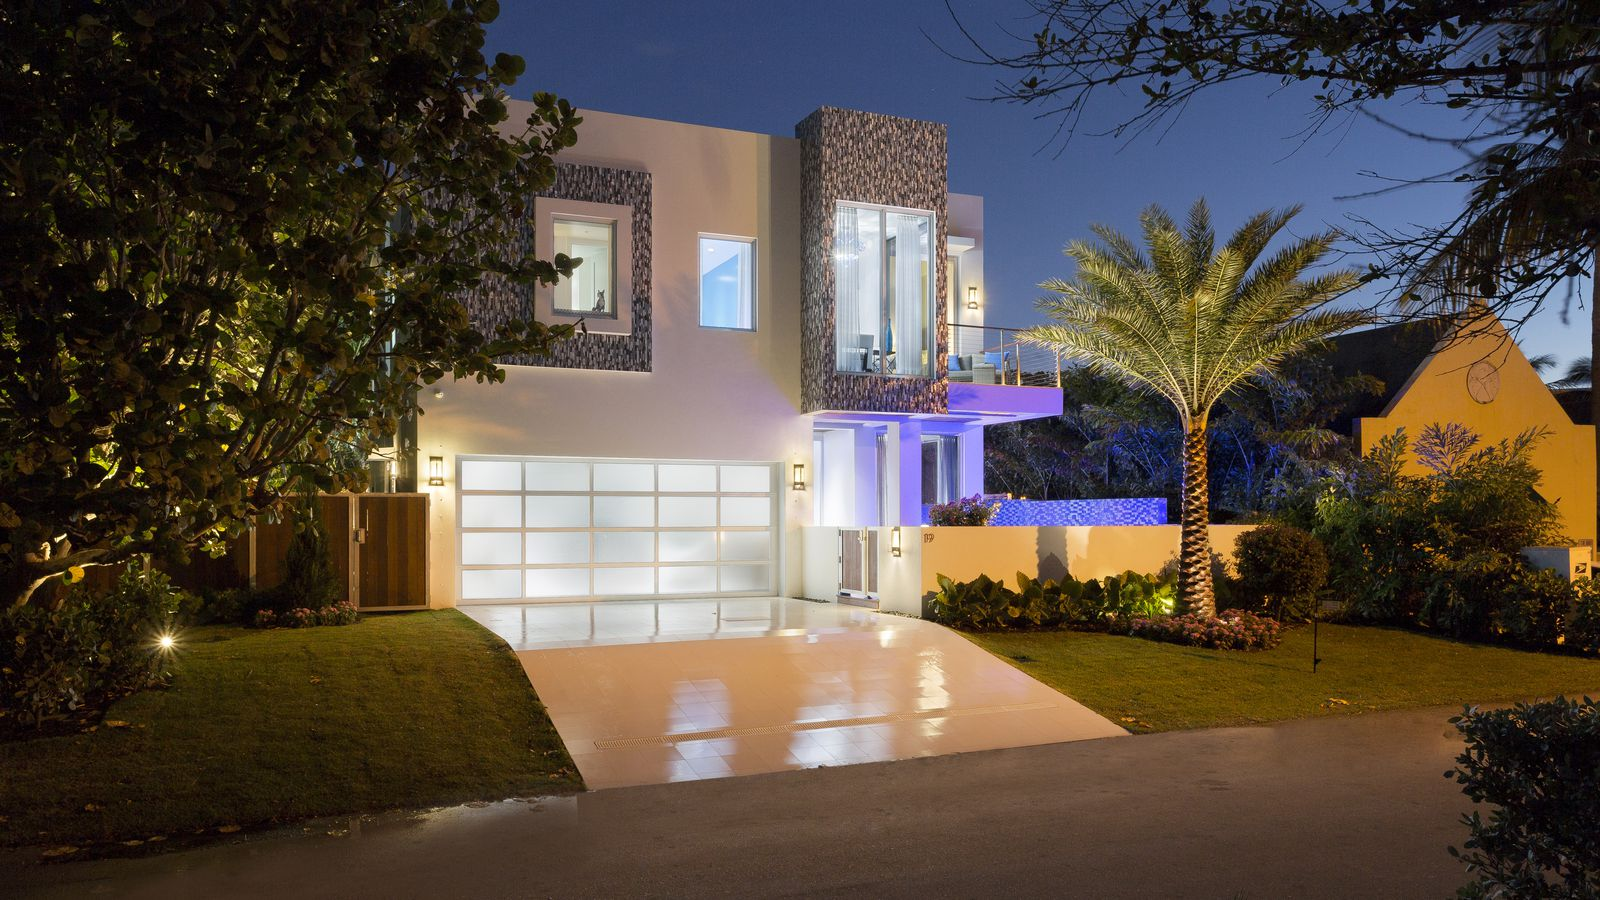 Tour Frank McKinneys 4M Florida Micro Mansion Curbed